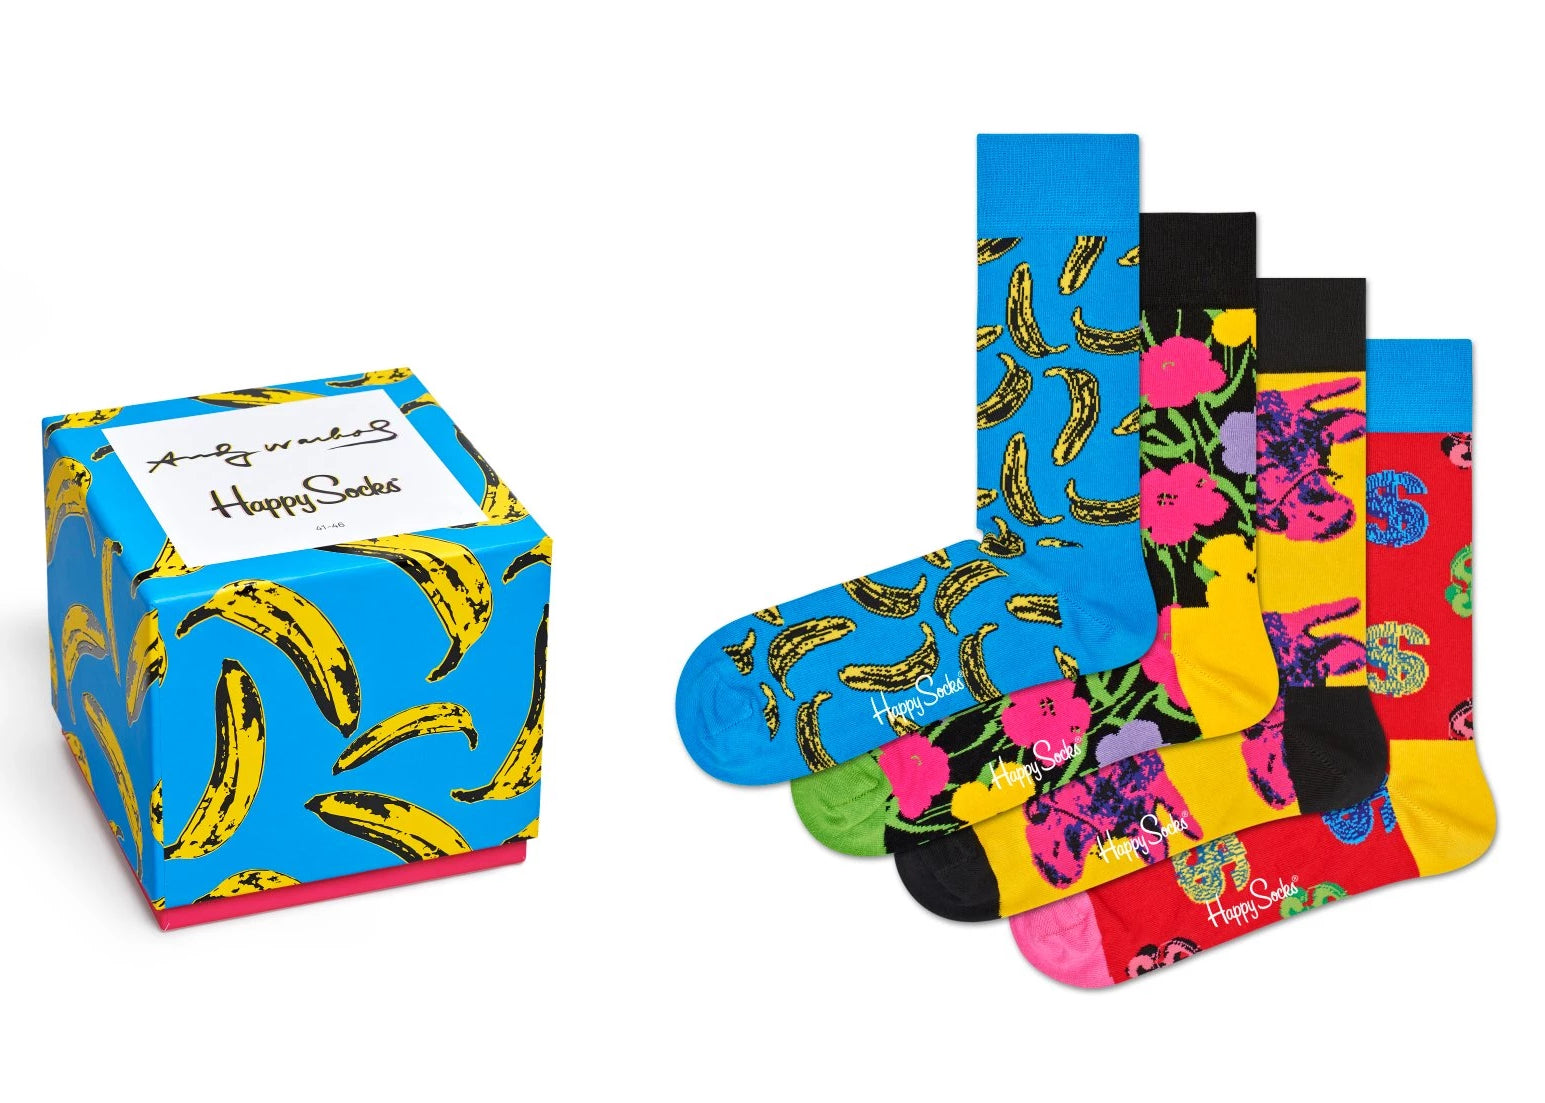 Andy Warhol Sock Set - The Brant Foundation Shop